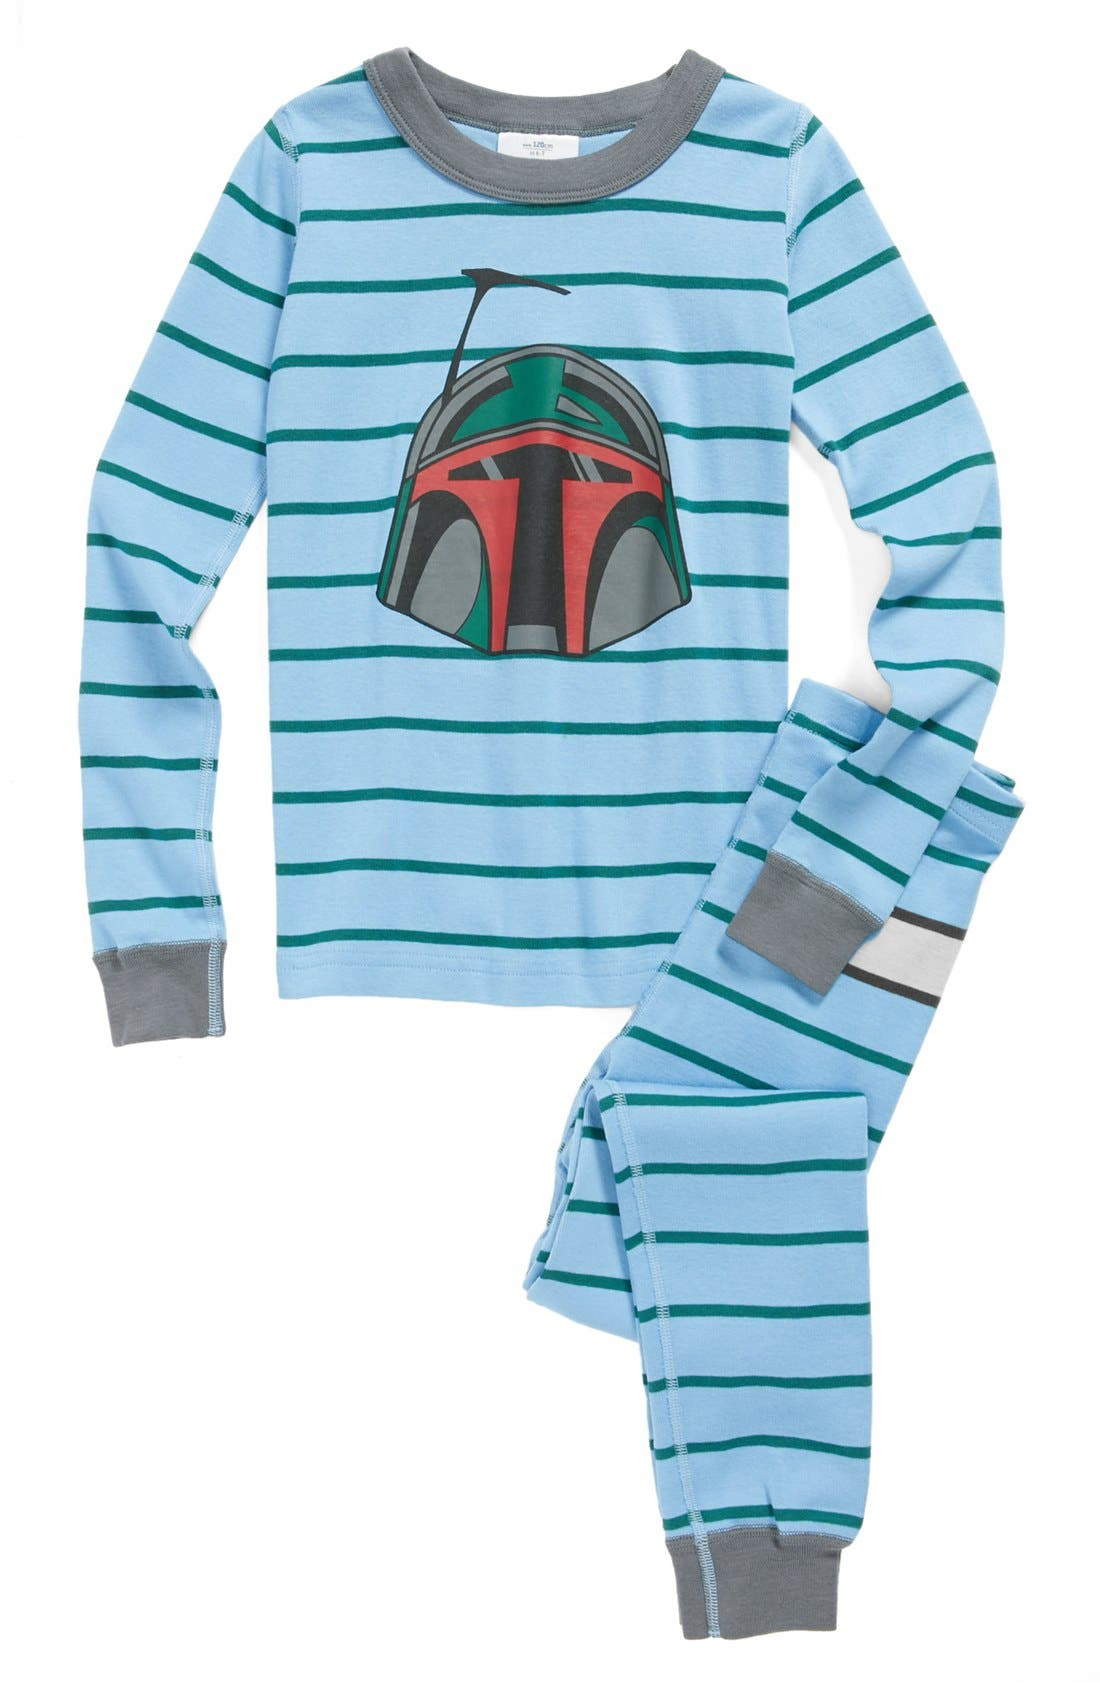 Main Image - Hanna Andersson 'Star Wars™ Boba Fett™' Two-Piece Organic Cotton Fitted Pajamas (Toddler Boys)